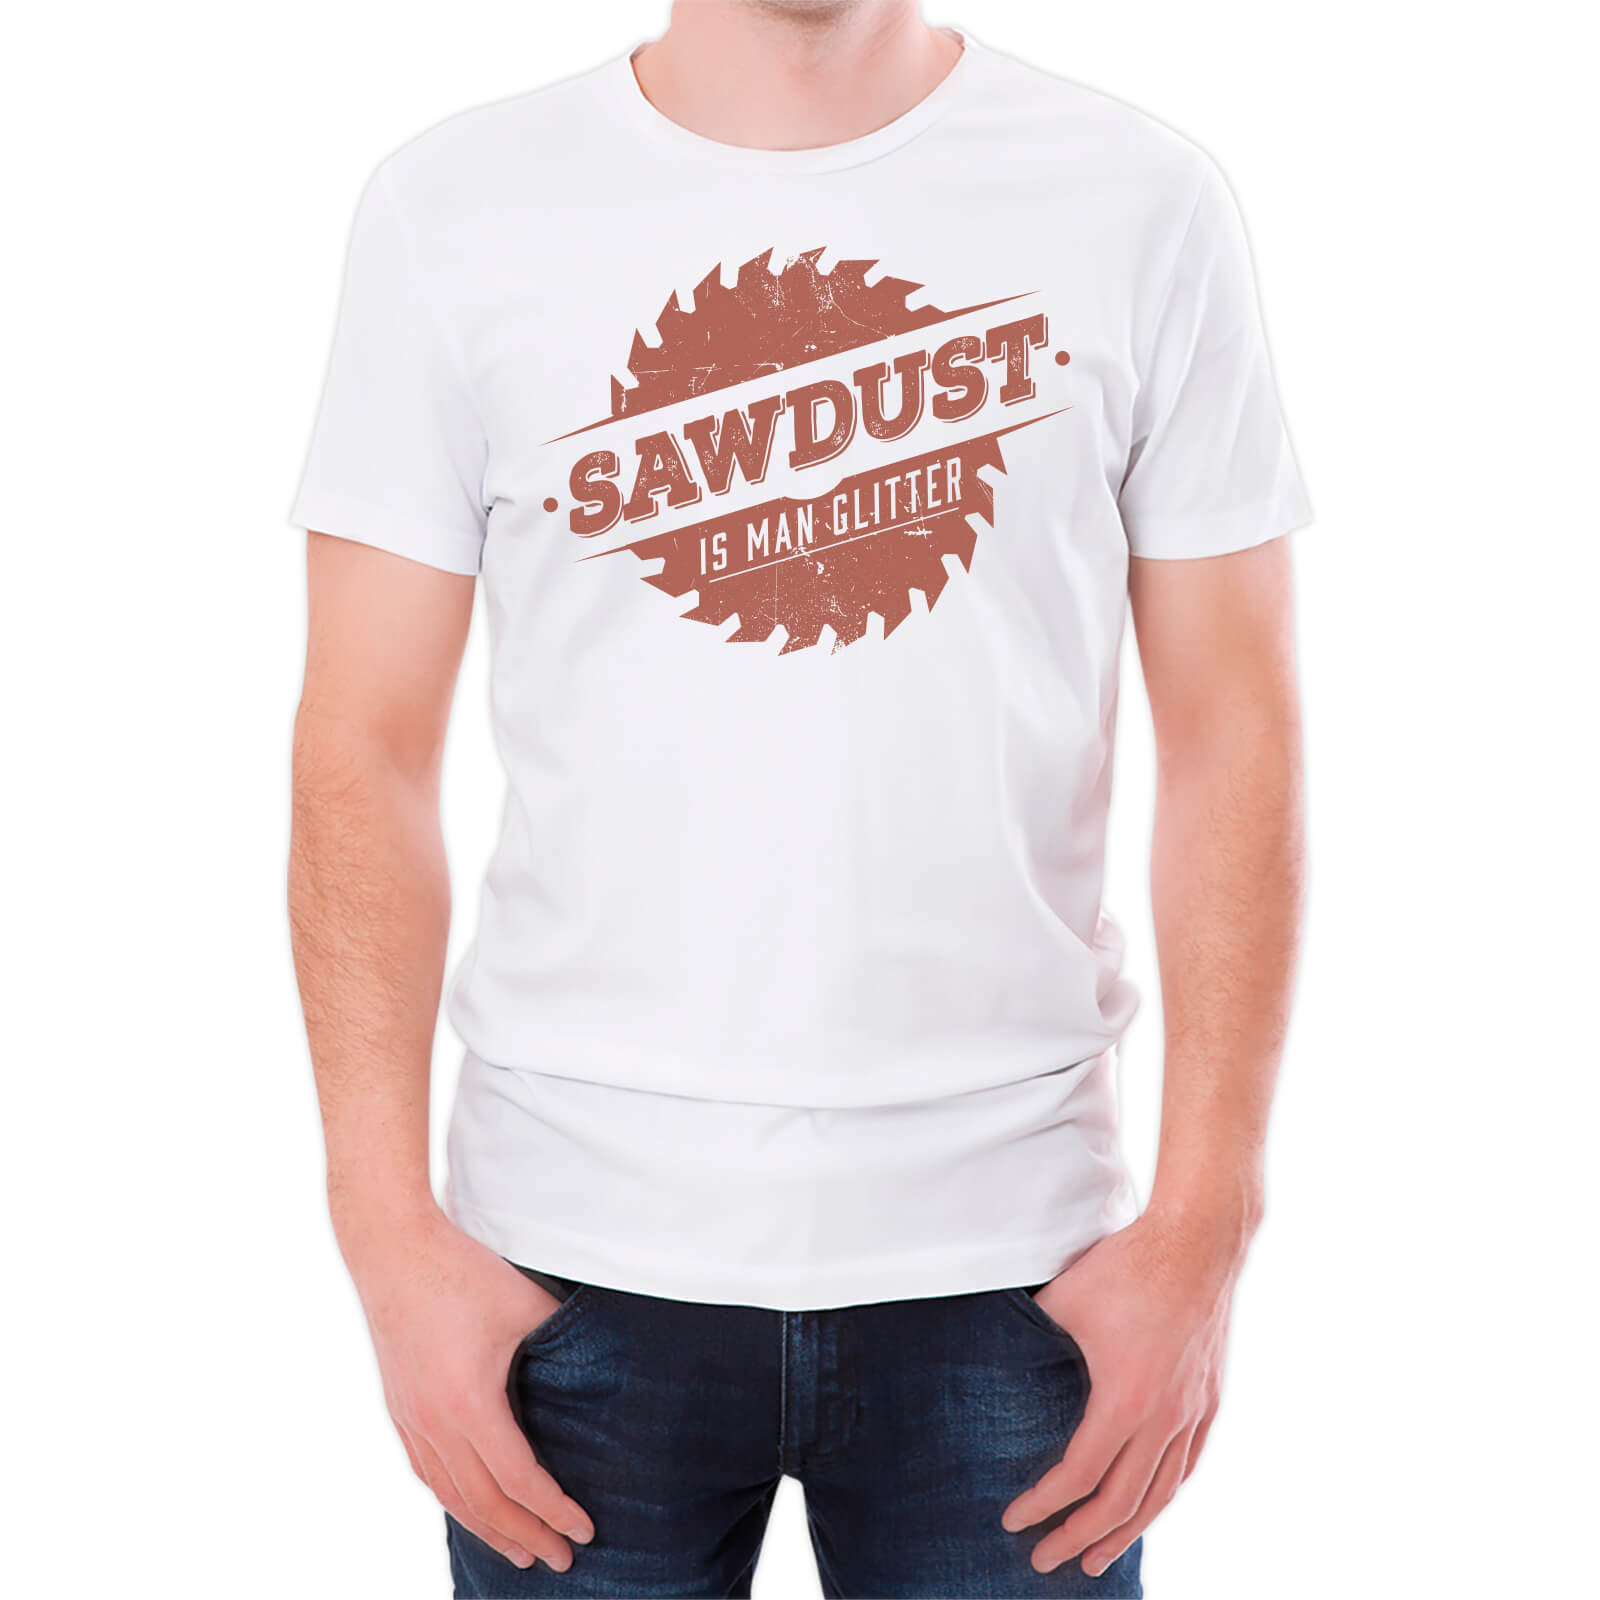 399c1cce981 Sawdust Is Man Glitter Men s White T-Shirt Clothing